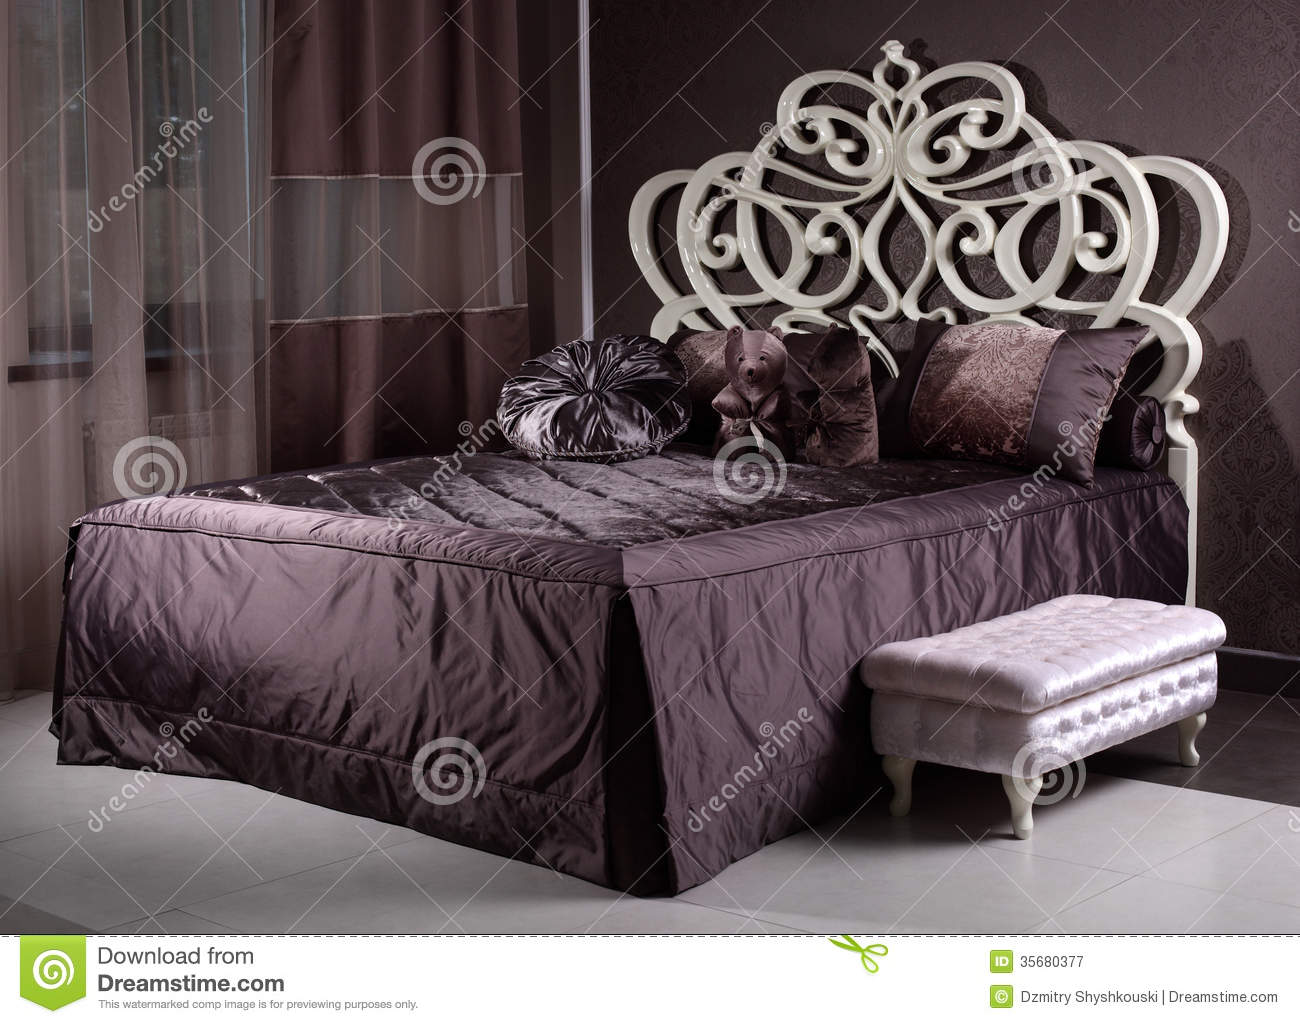 Luxury Wooden Bed In The Room Stock Image Image 35680377 : luxury wooden bed room modern bad 35680377 from www.dreamstime.com size 1300 x 1024 jpeg 162kB